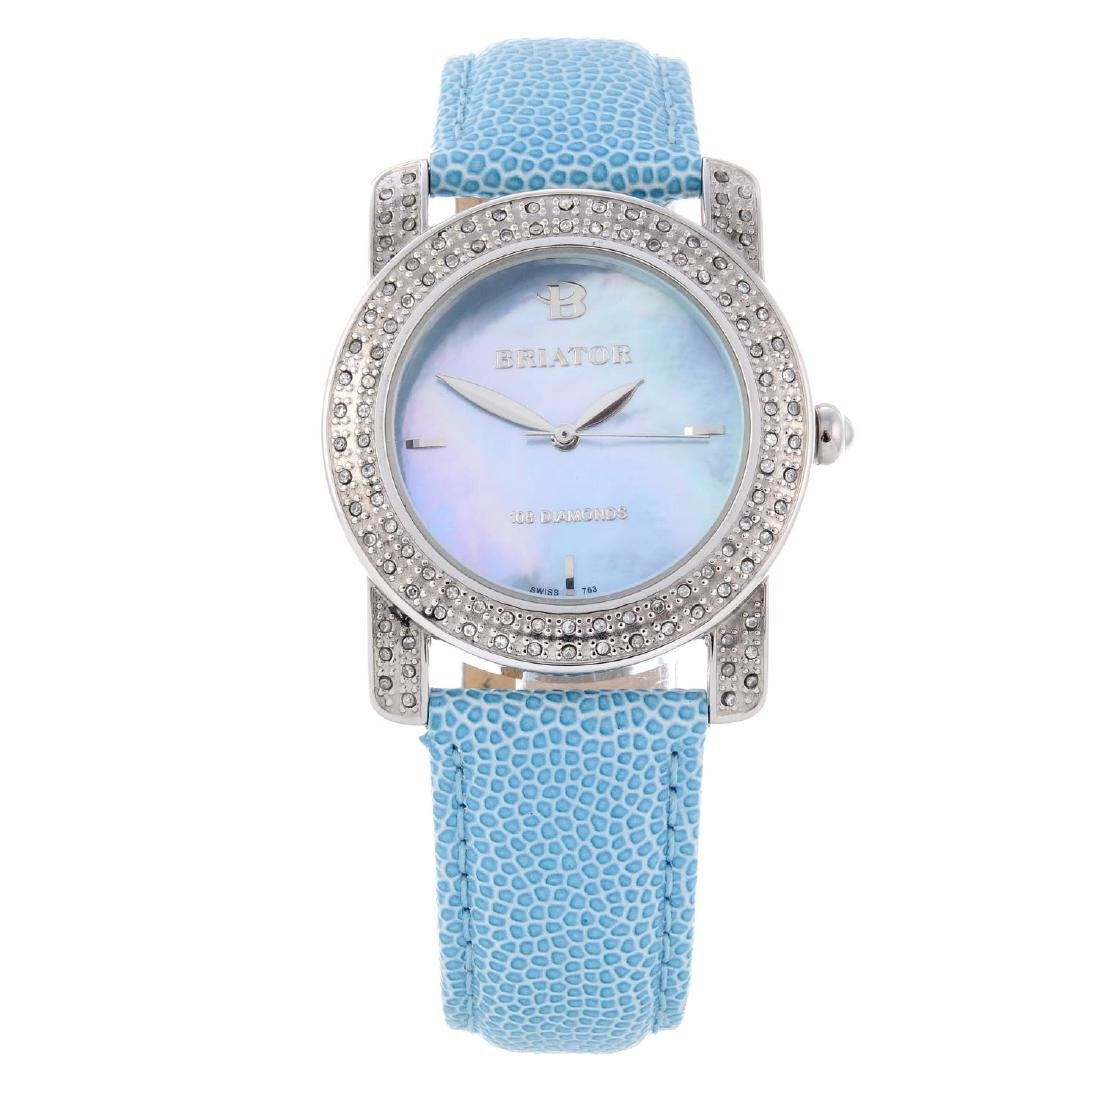 BRIATOR - a lady's wrist watch. Stainless steel case